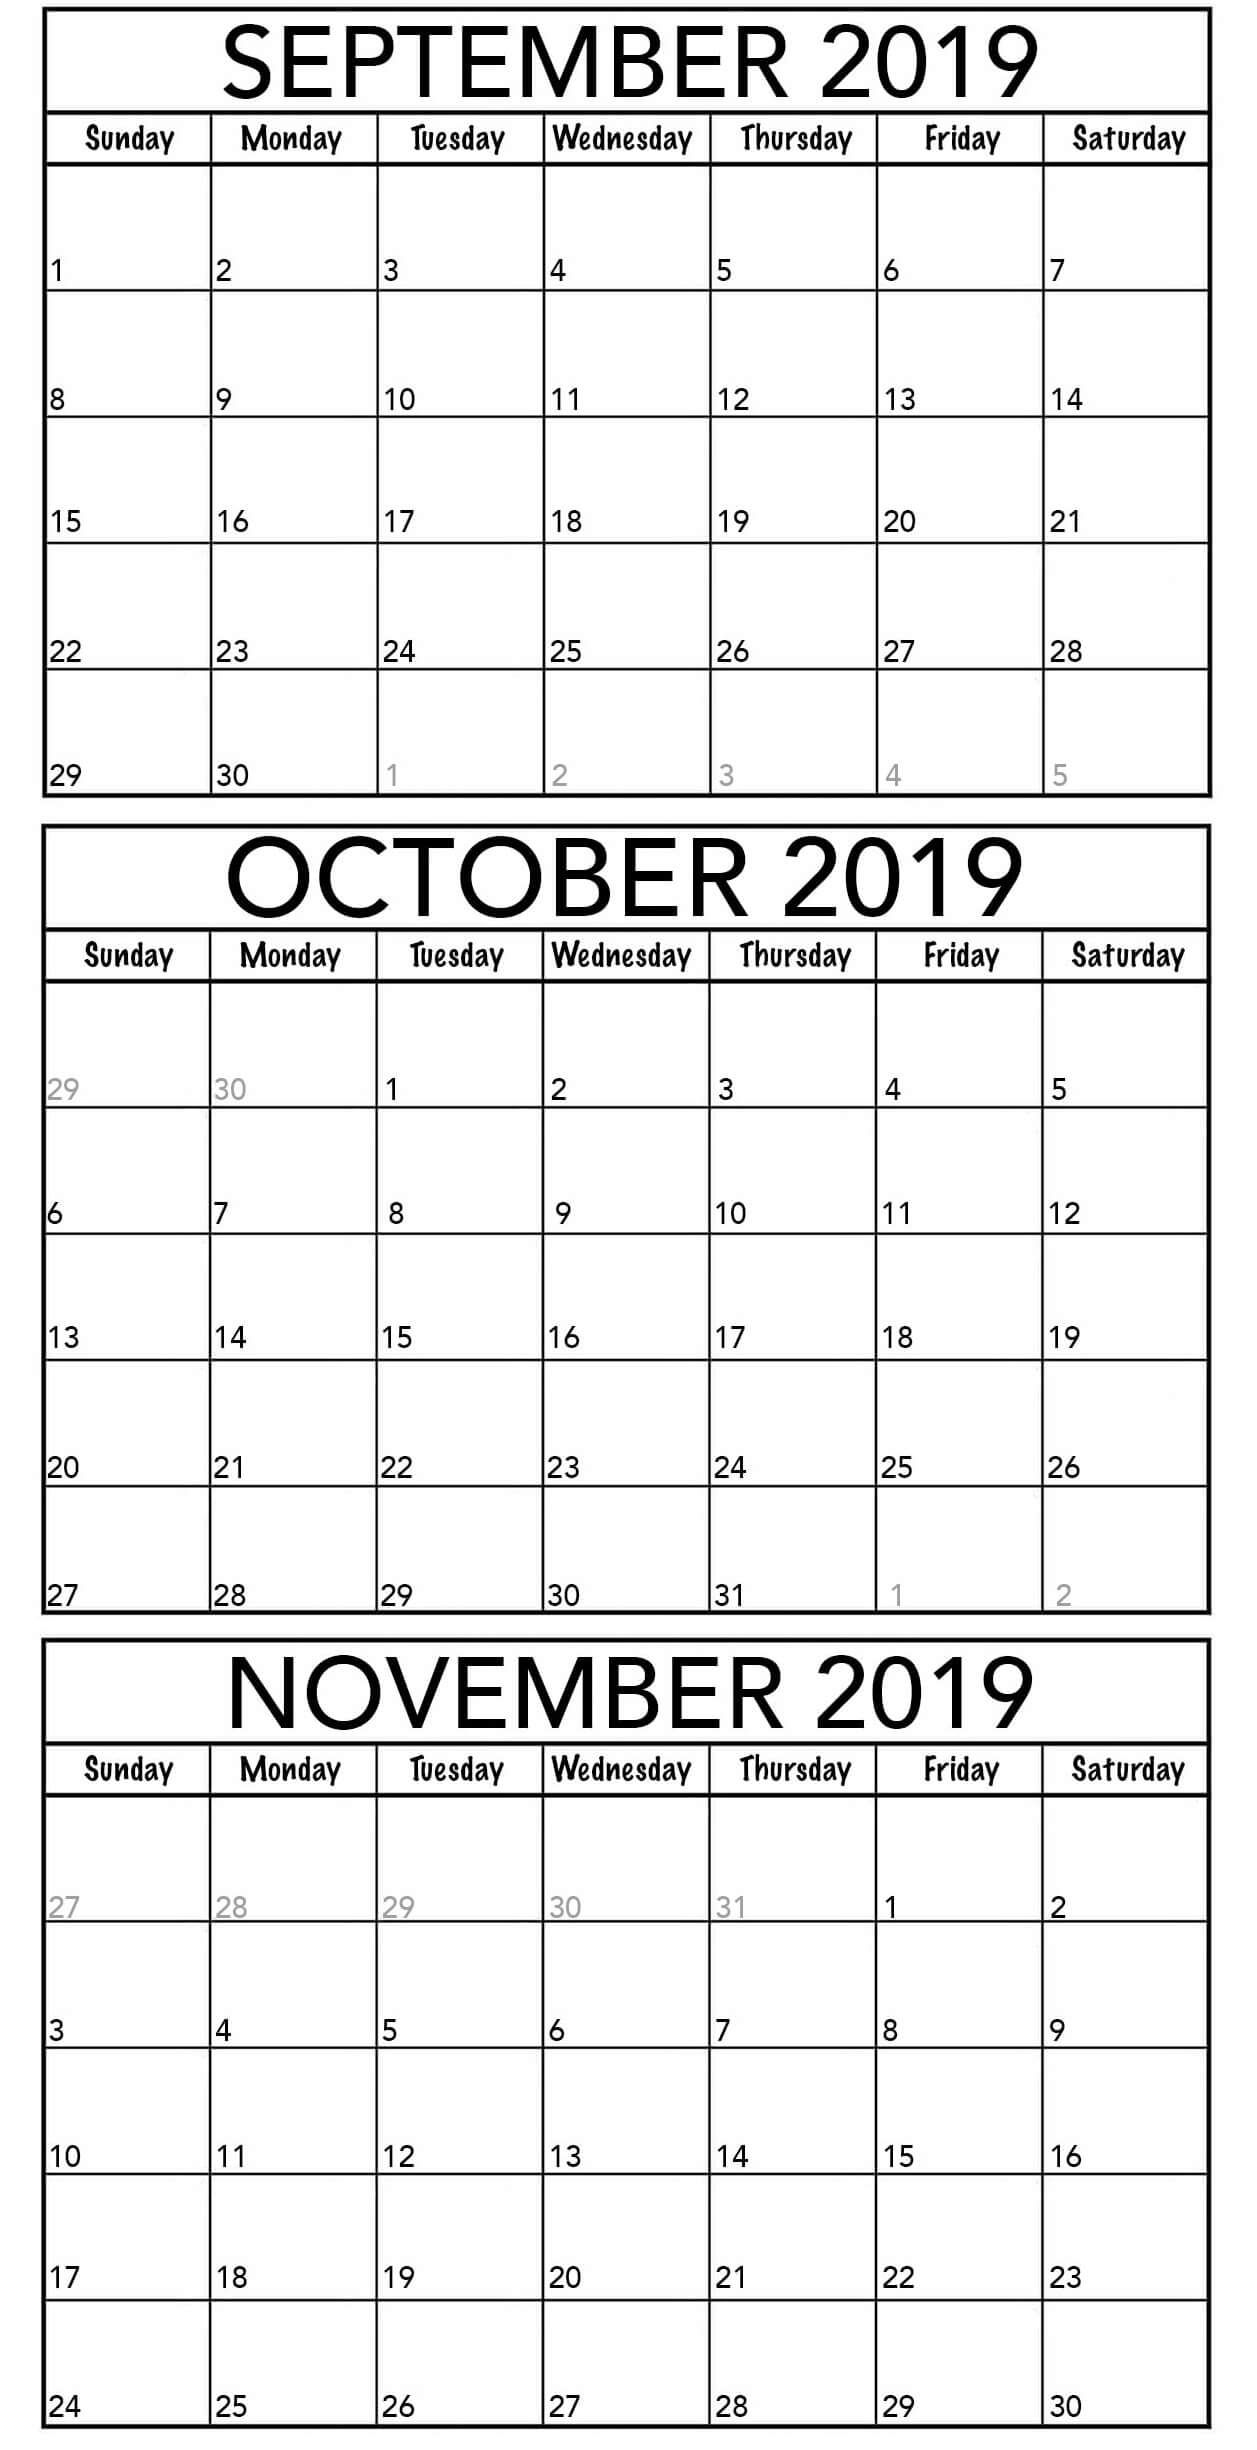 Blank September October November 2019 Calendar Template 2019